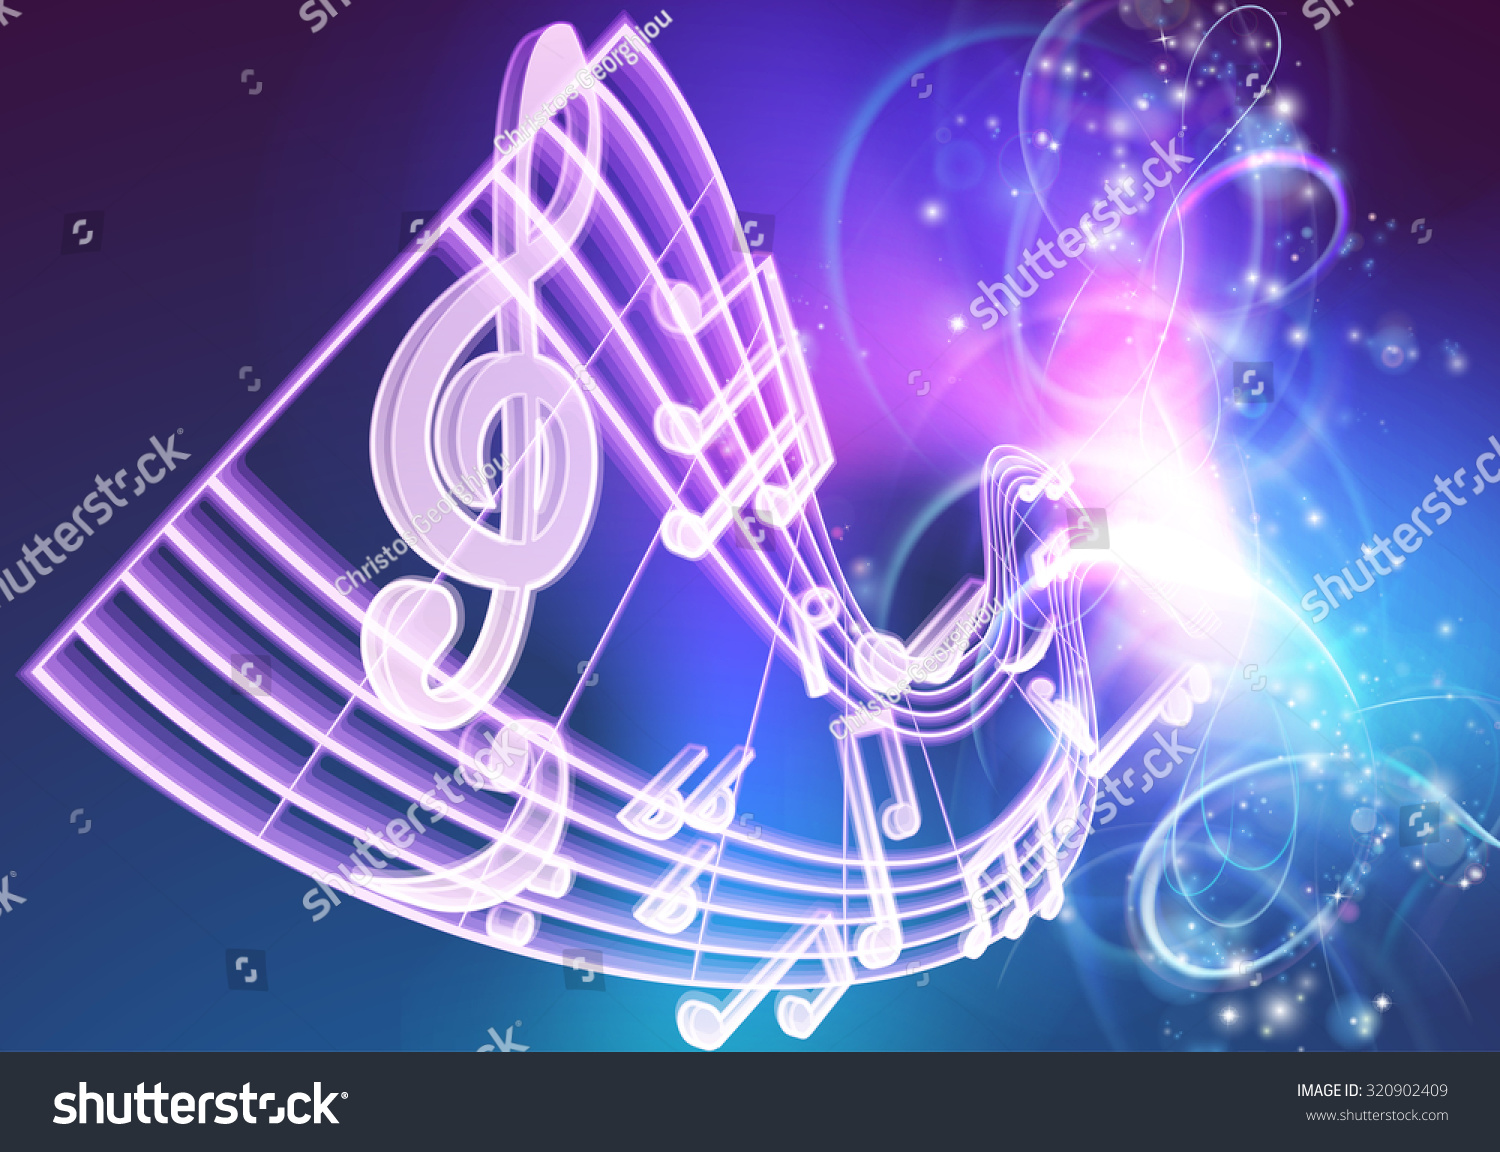 Neon Music Notes Wallpaper: A Music Background Featuring Musical Music Notes Woth A